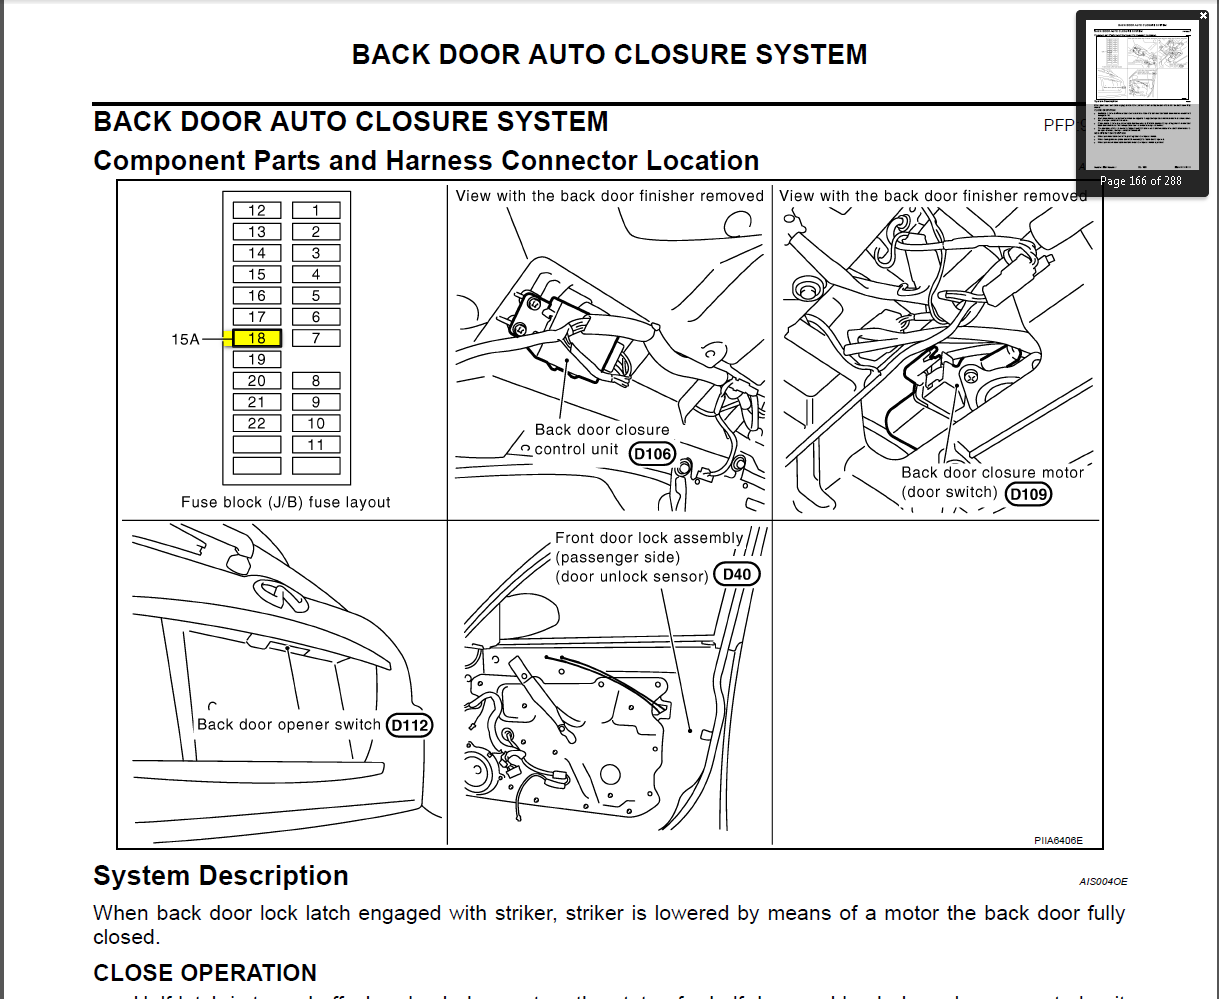 G37 Fuse Box Diagram | 2012 volkswagen gti, 2011 toyota ... Vw Pickup Fuse Diagram on toyota fuse diagram, isuzu pickup fuse diagram, volkswagen fuse diagram, lexus fuse diagram, ford bronco fuse diagram, volvo fuse diagram, ford mustang fuse diagram,